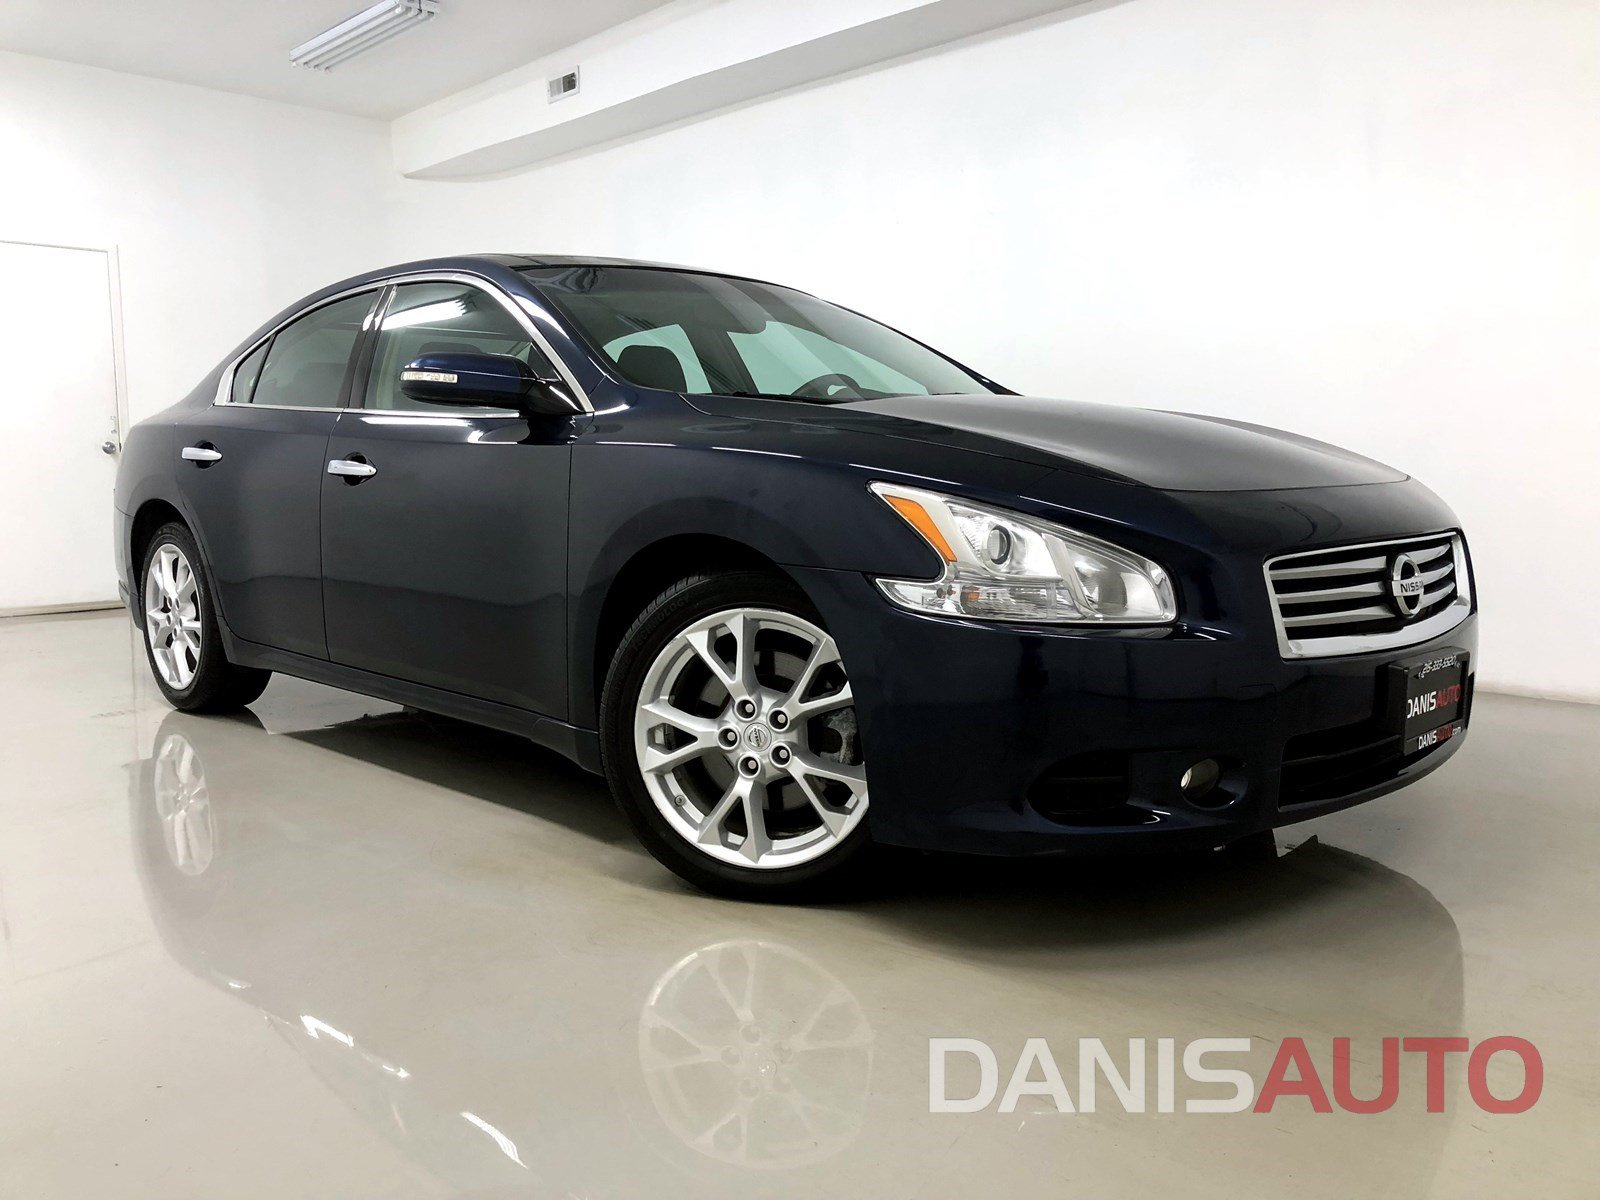 Pre Owned 2014 Nissan Maxima SV